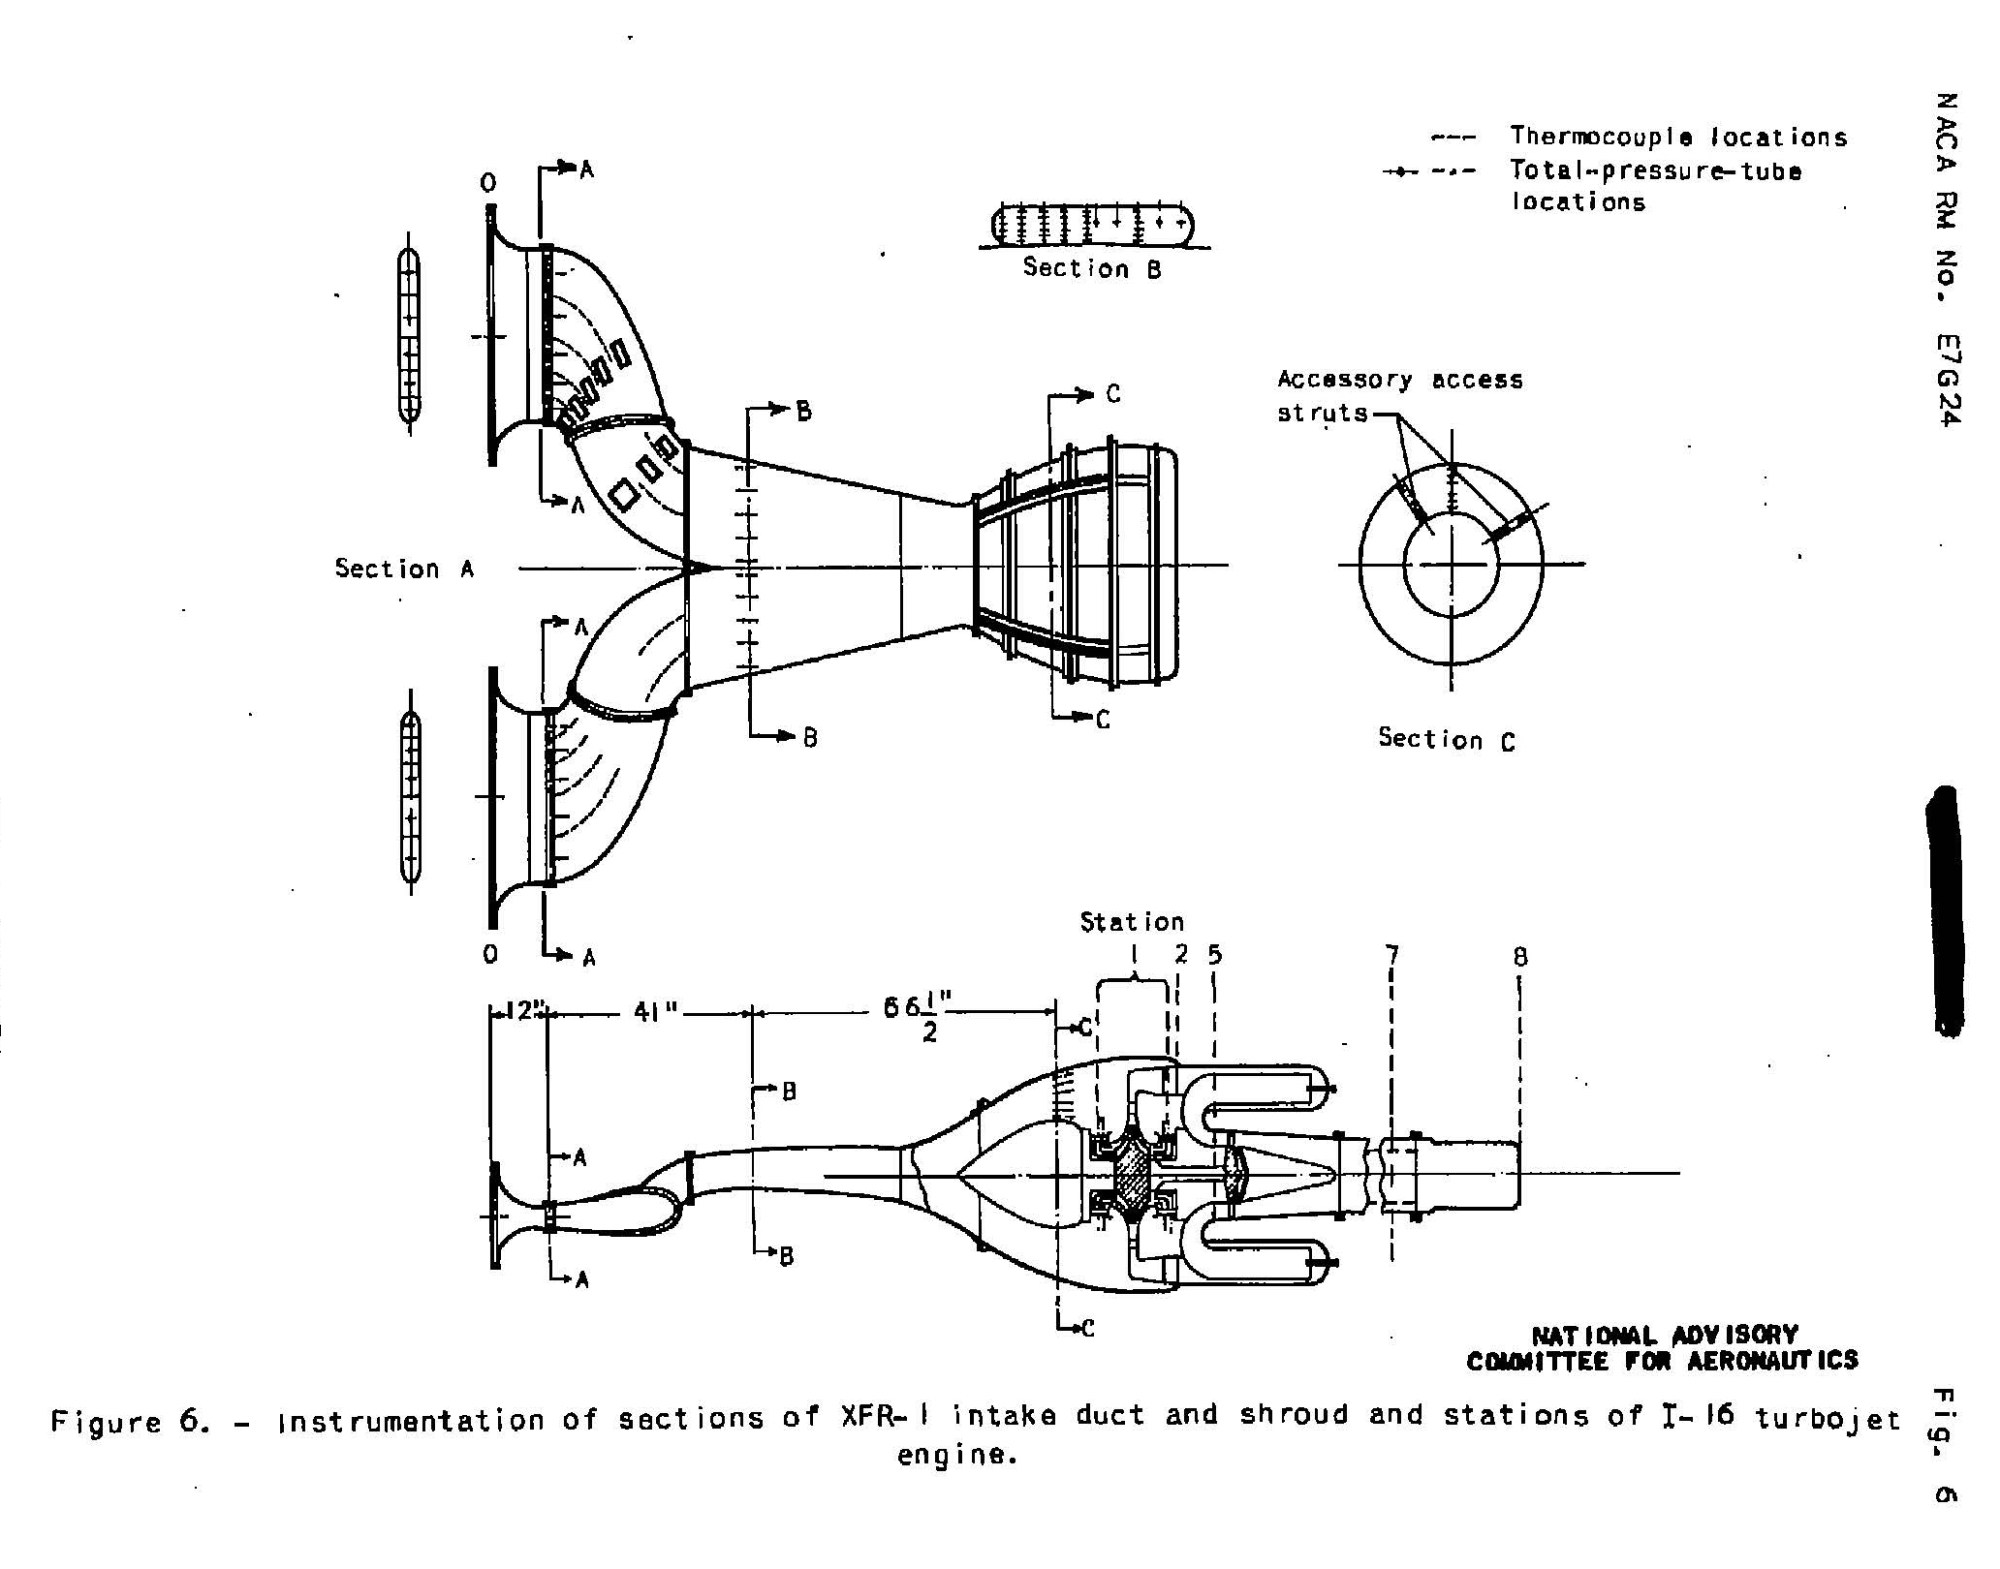 hight resolution of schematic drawing of modified intake for xfr 1